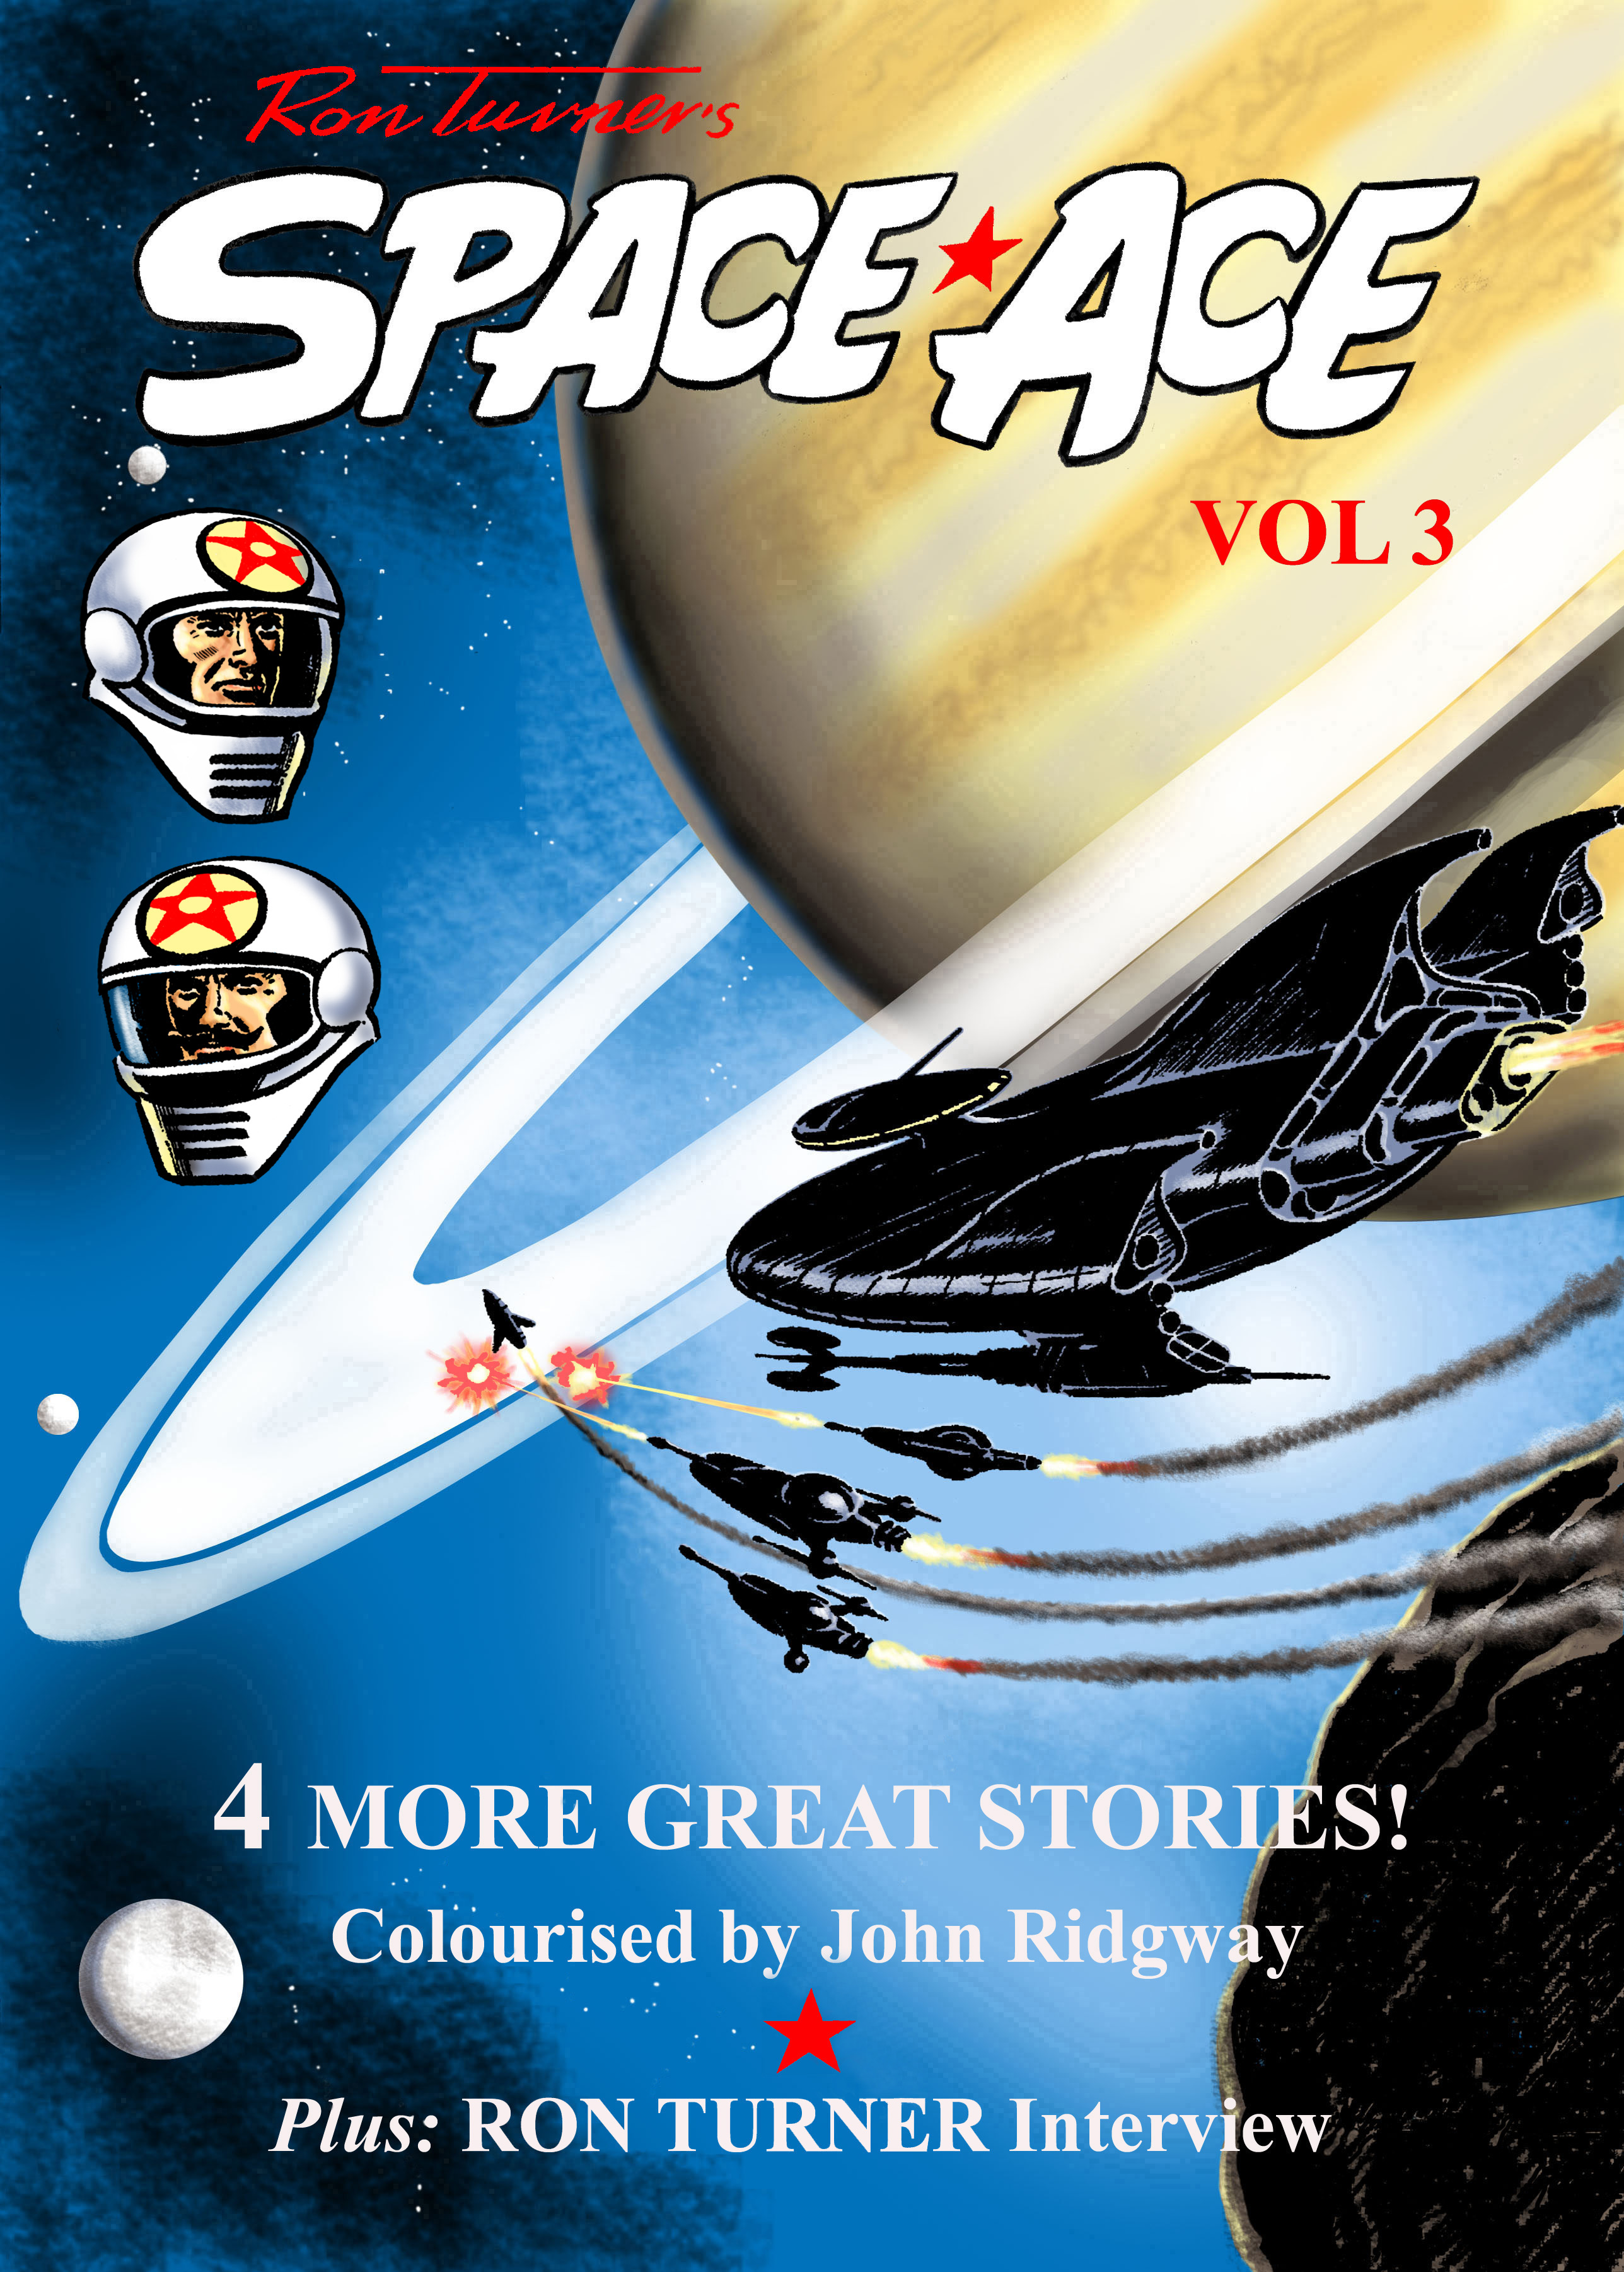 Space Ace Volume 3 - Cover